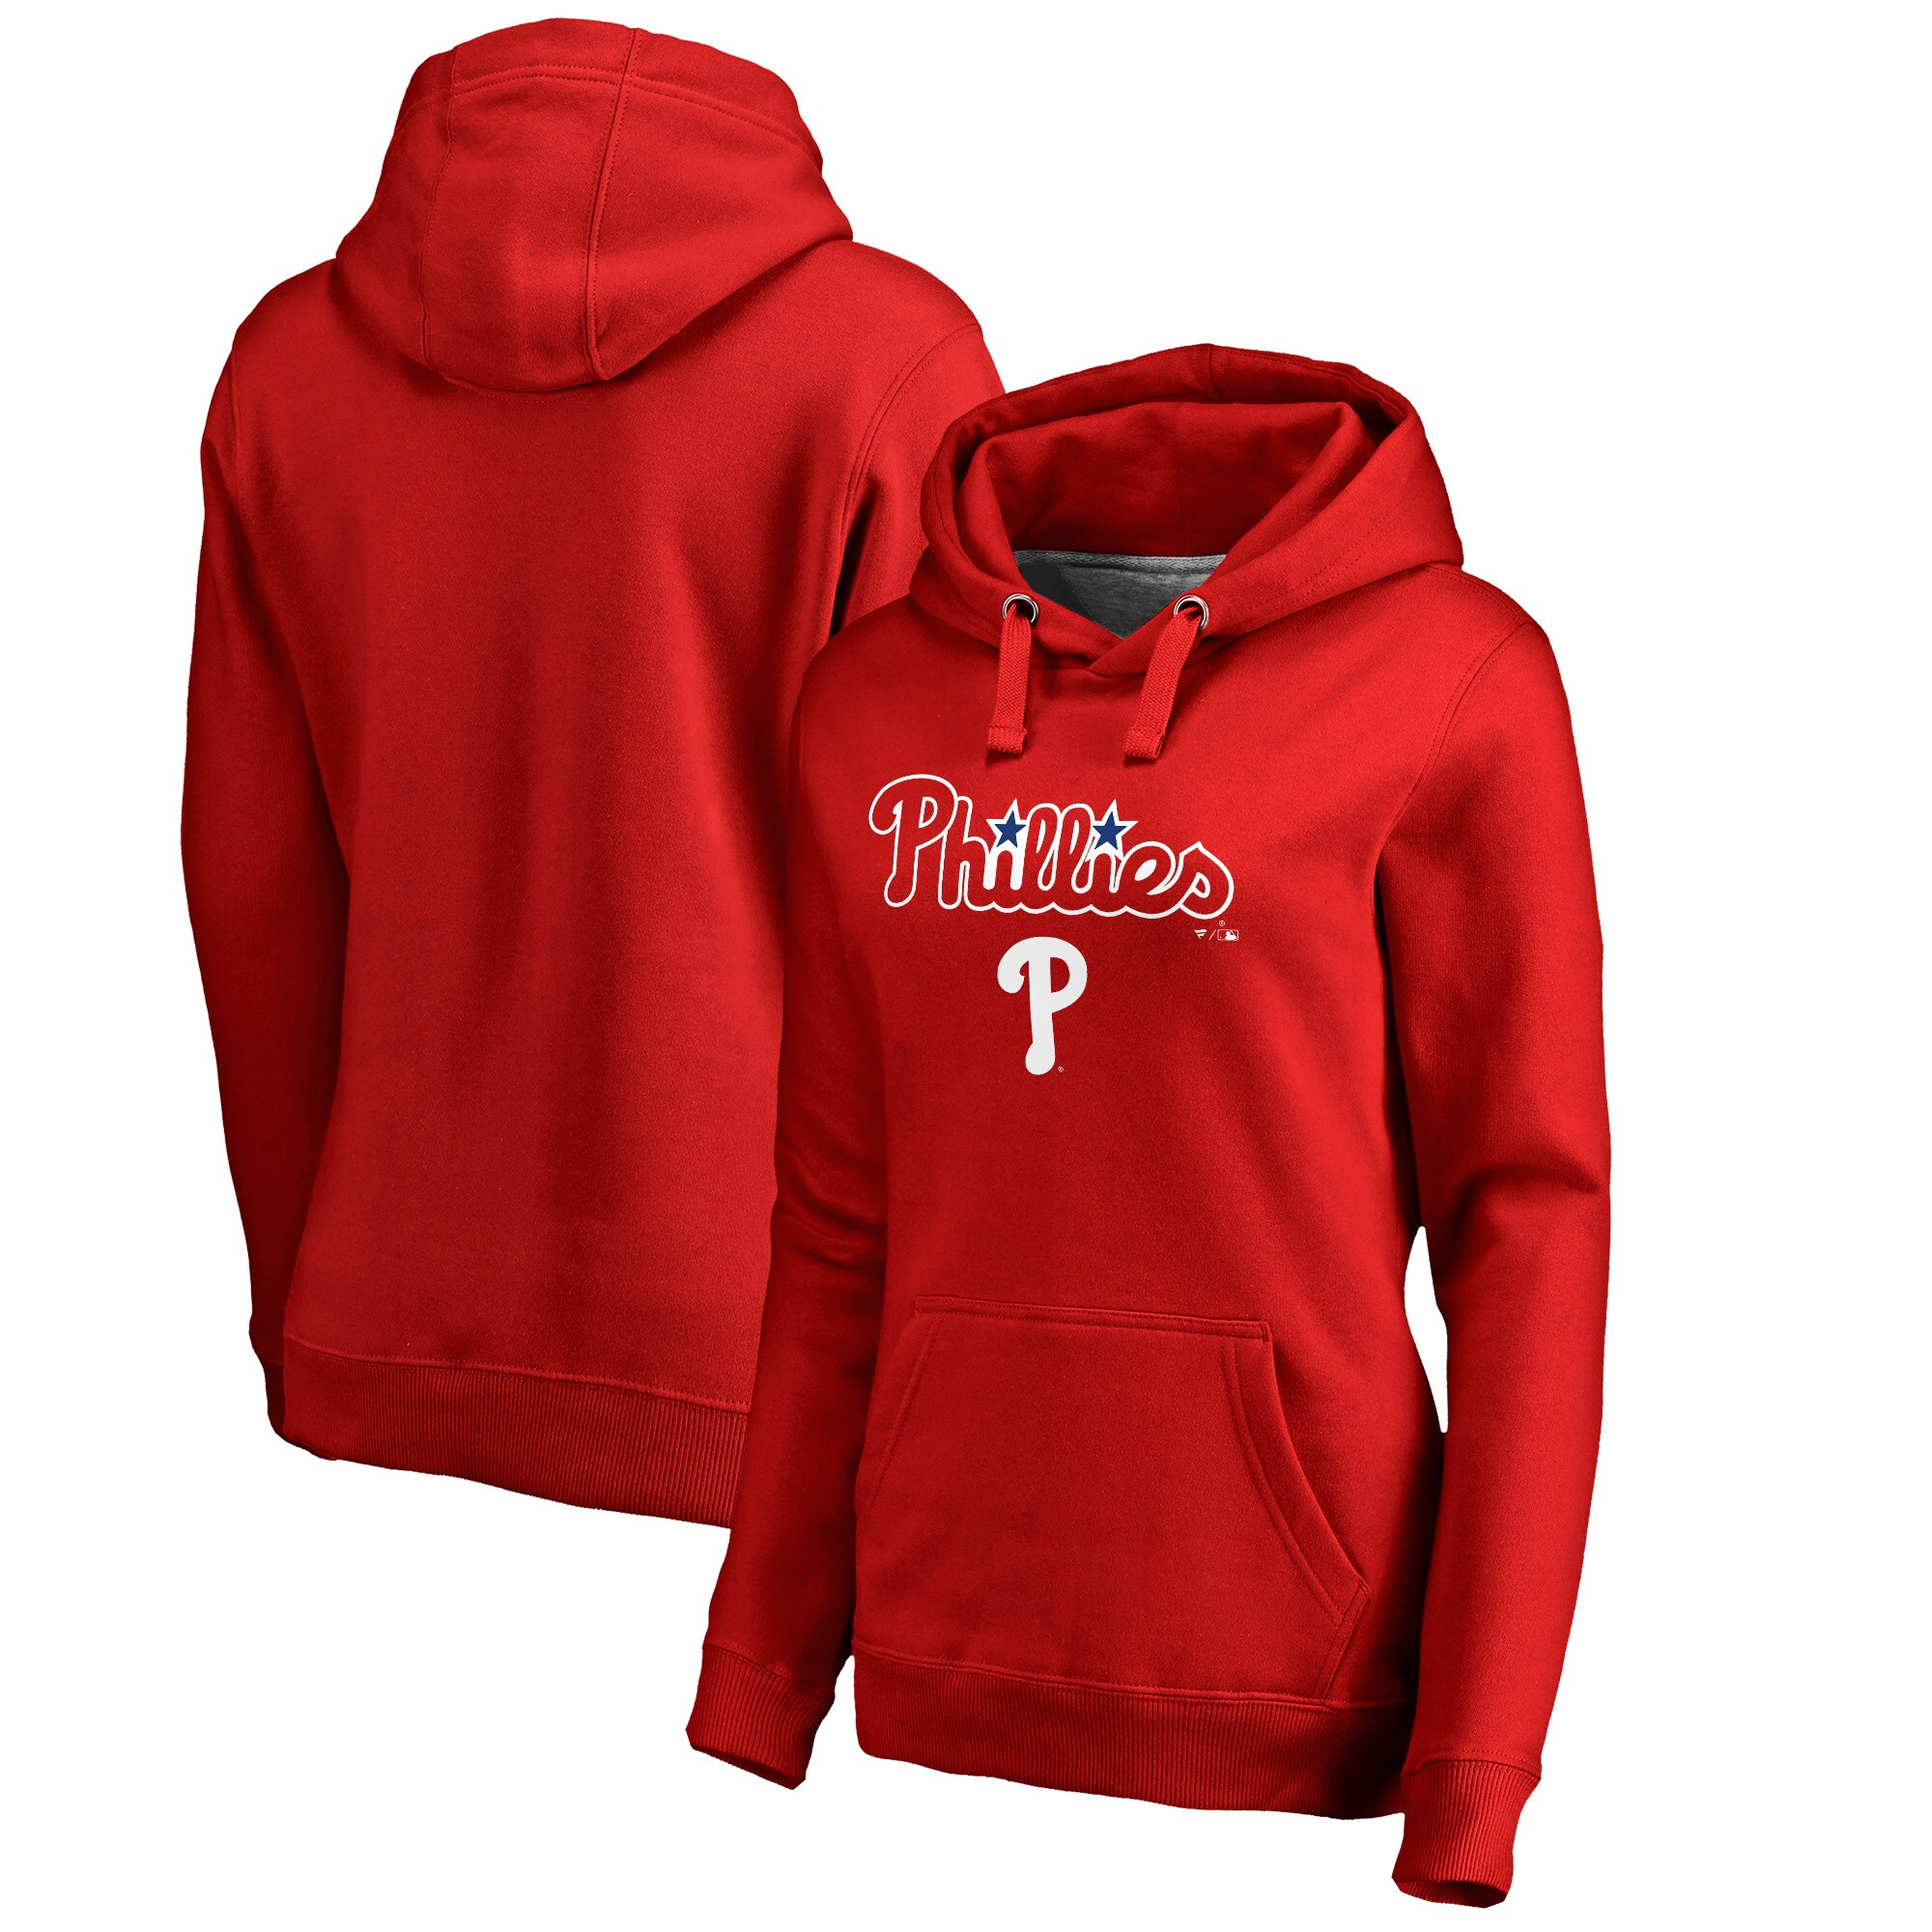 Philadelphia Phillies Fanatics Branded Women's Plus Size Team Lockup Pullover Hoodie - Red